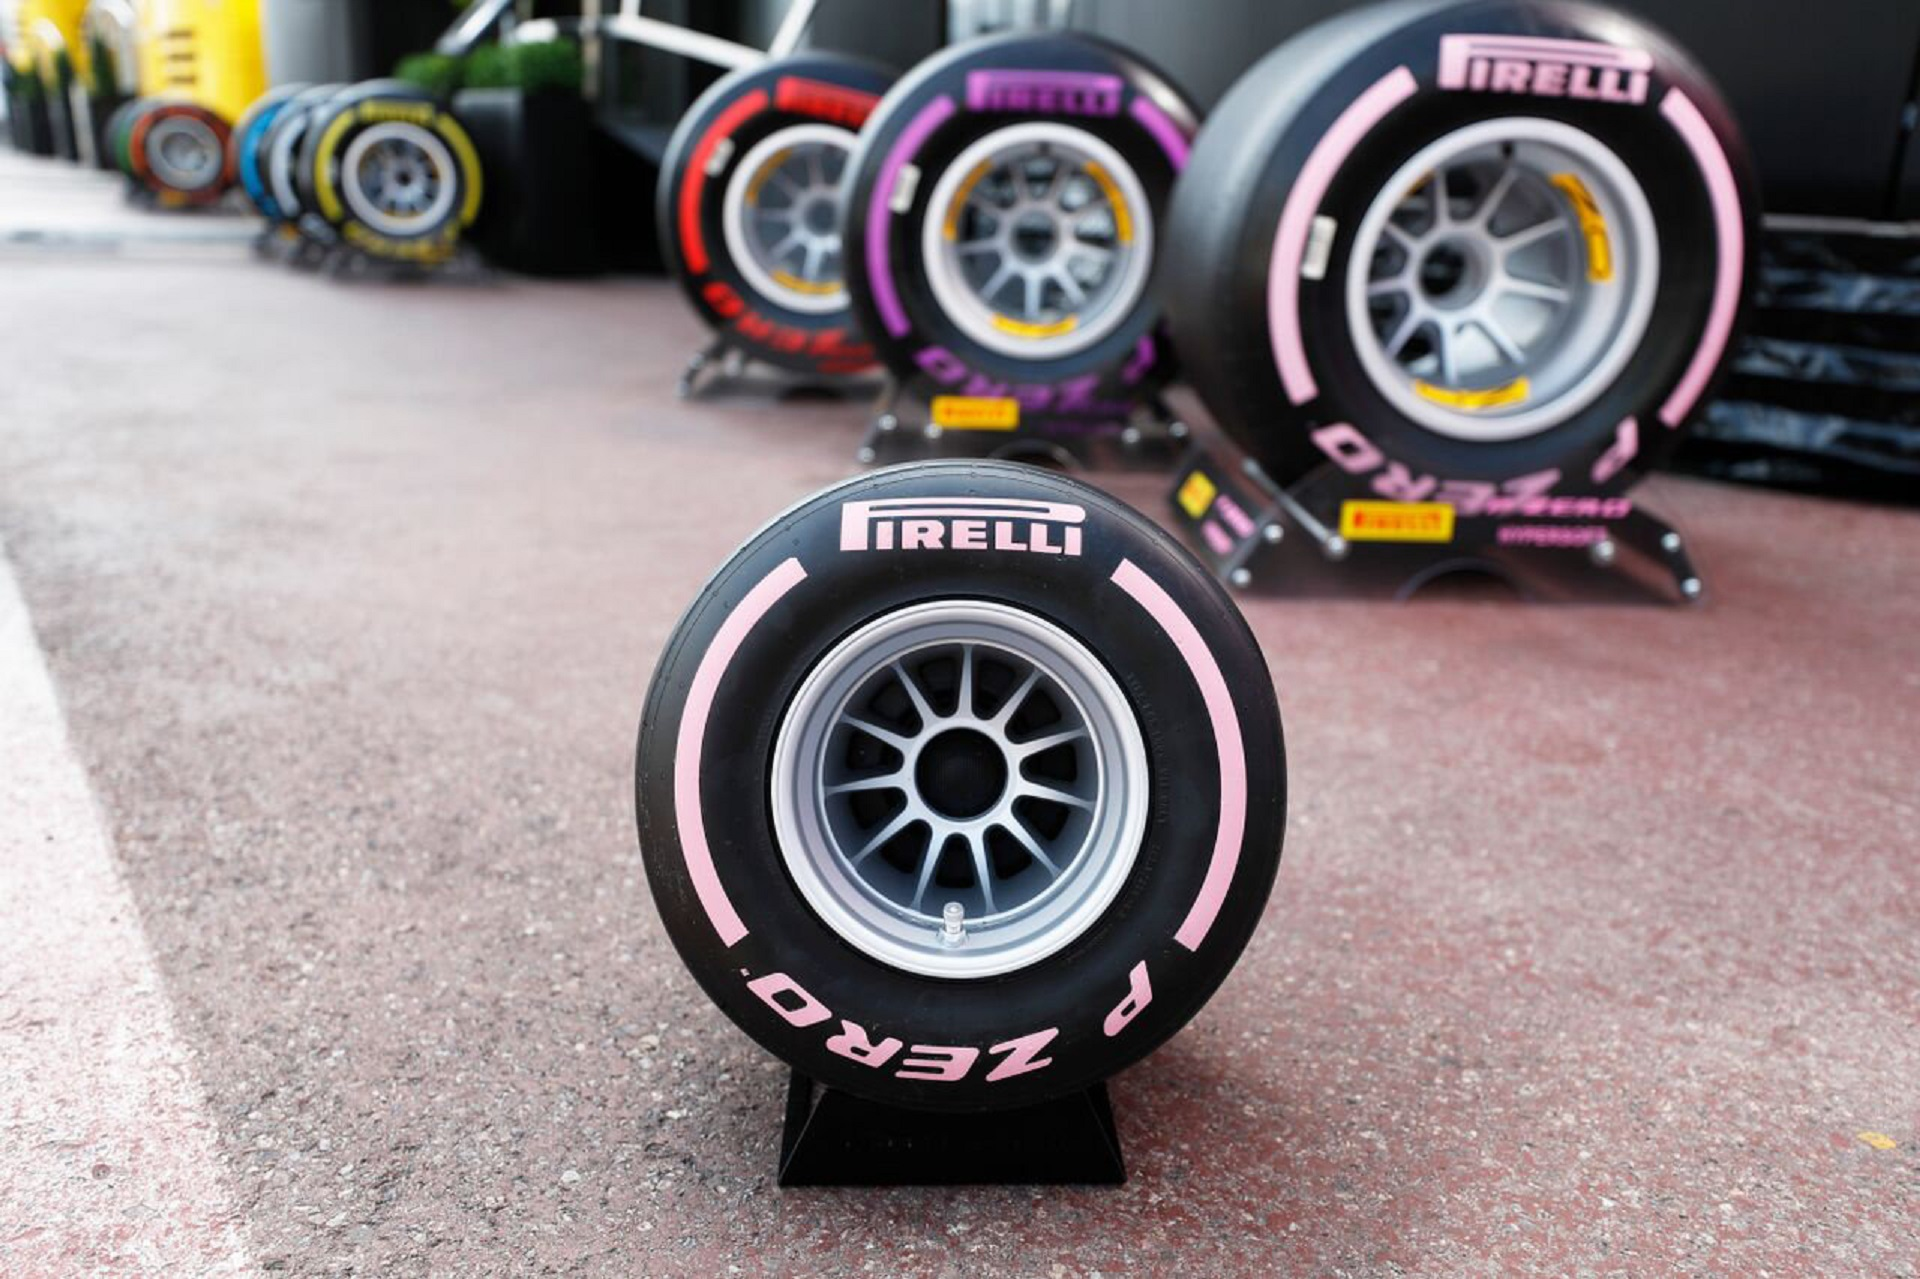 Pirelli Targets The Hearts And Wallets Of F1 Fans With Tire Inspired